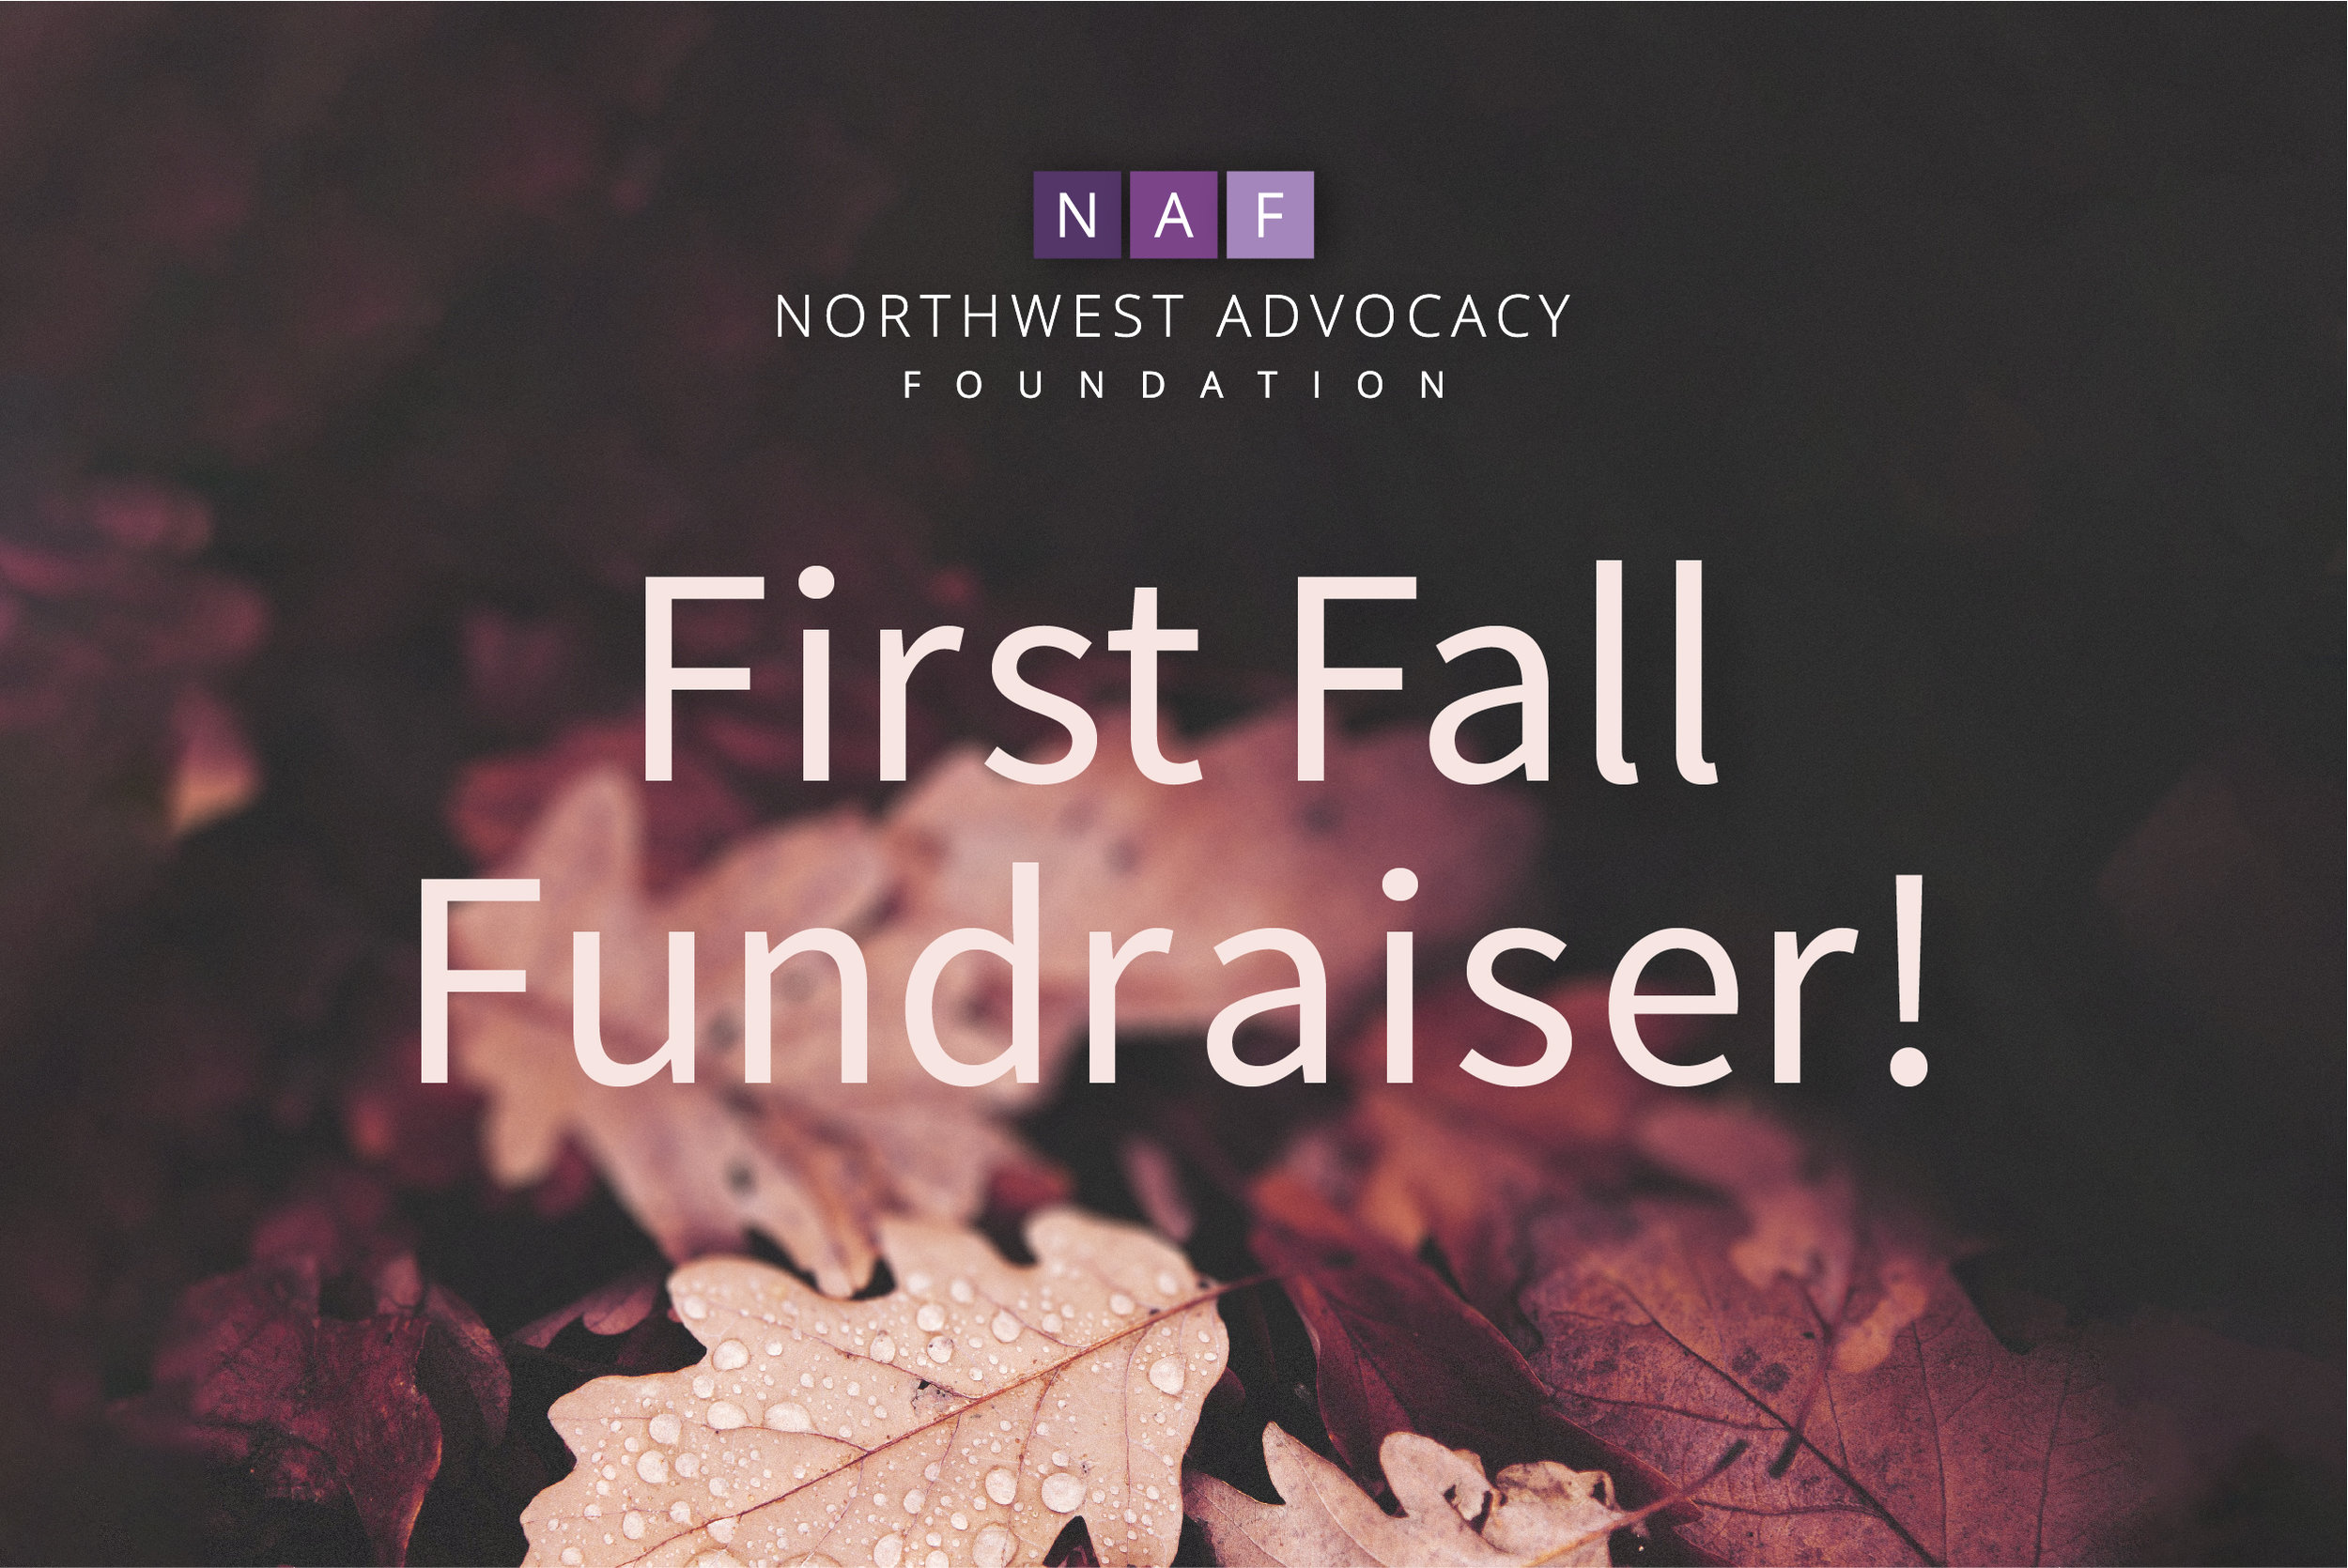 1a First Fall Fundraiser.jpg